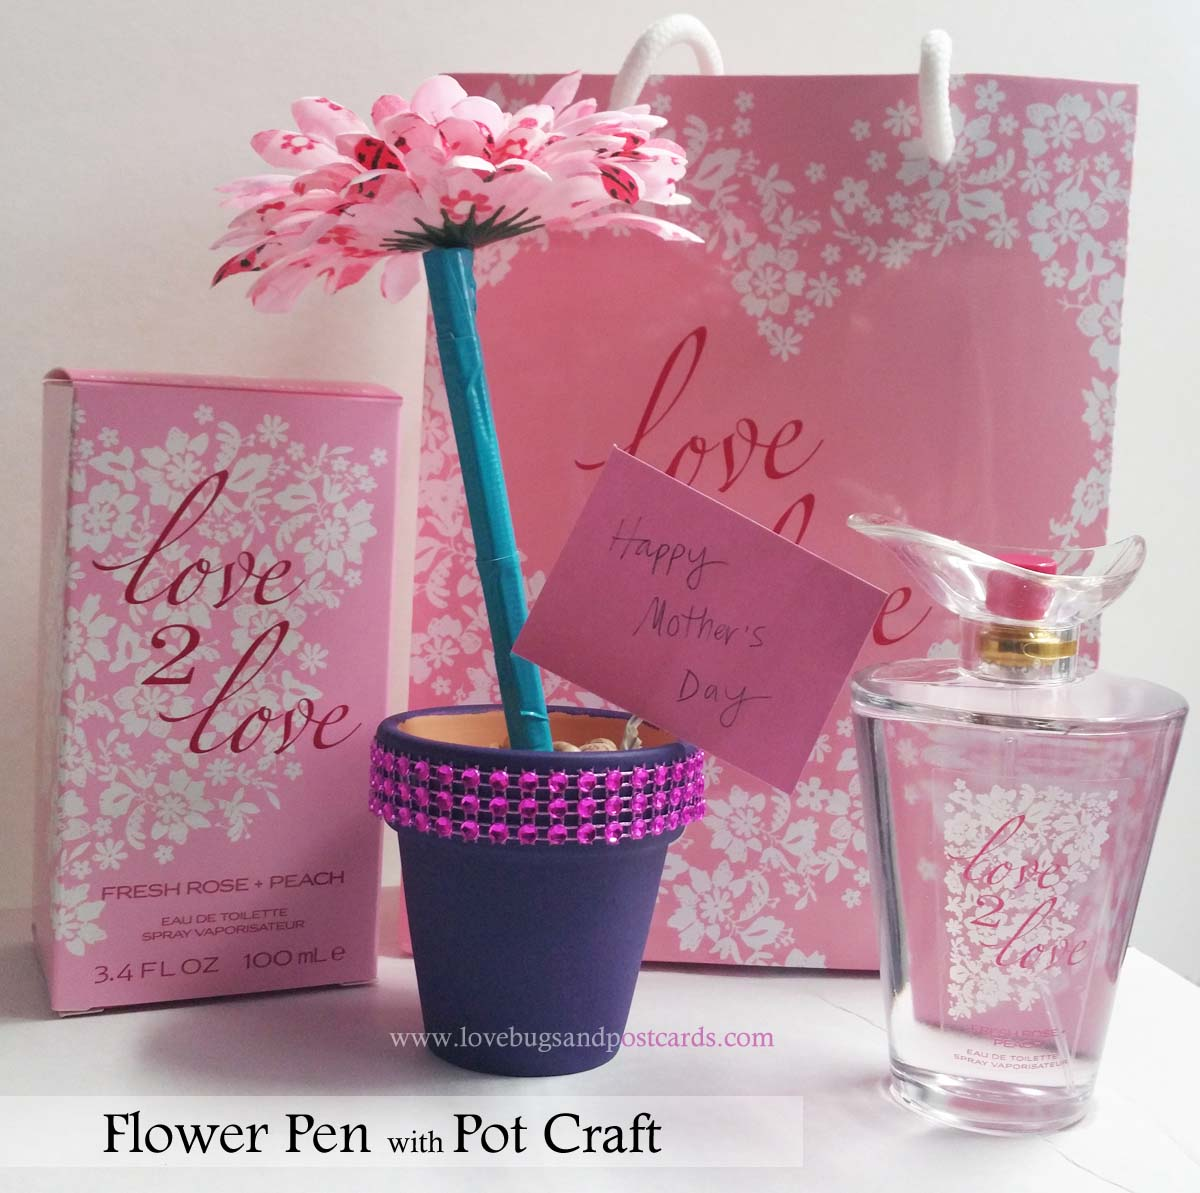 Flower Pen and Pot Craft